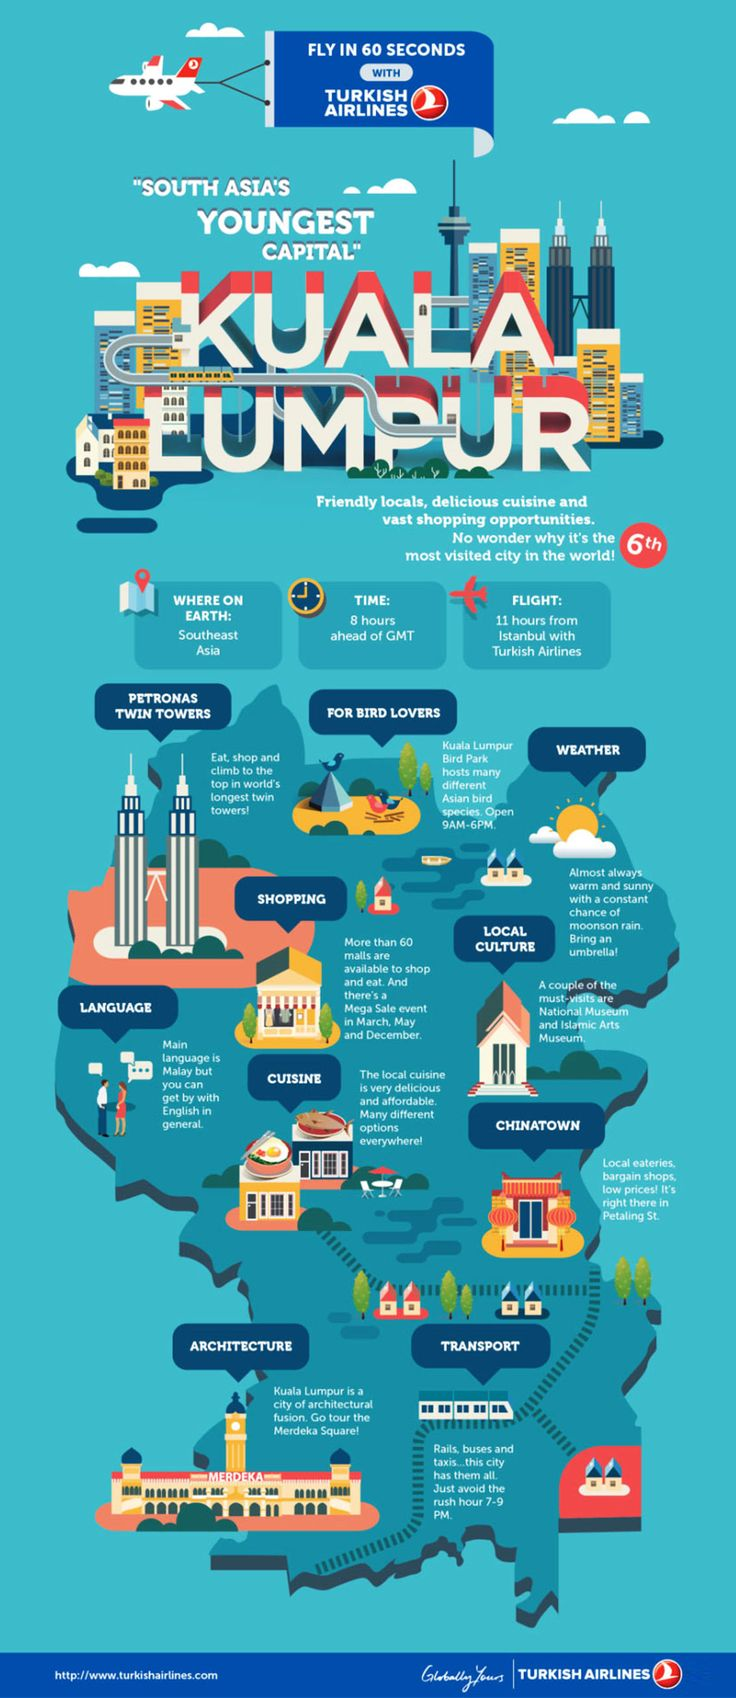 City Guide Kuala Lumpur - Travel Infographic. Topic: Malaysia, Asia